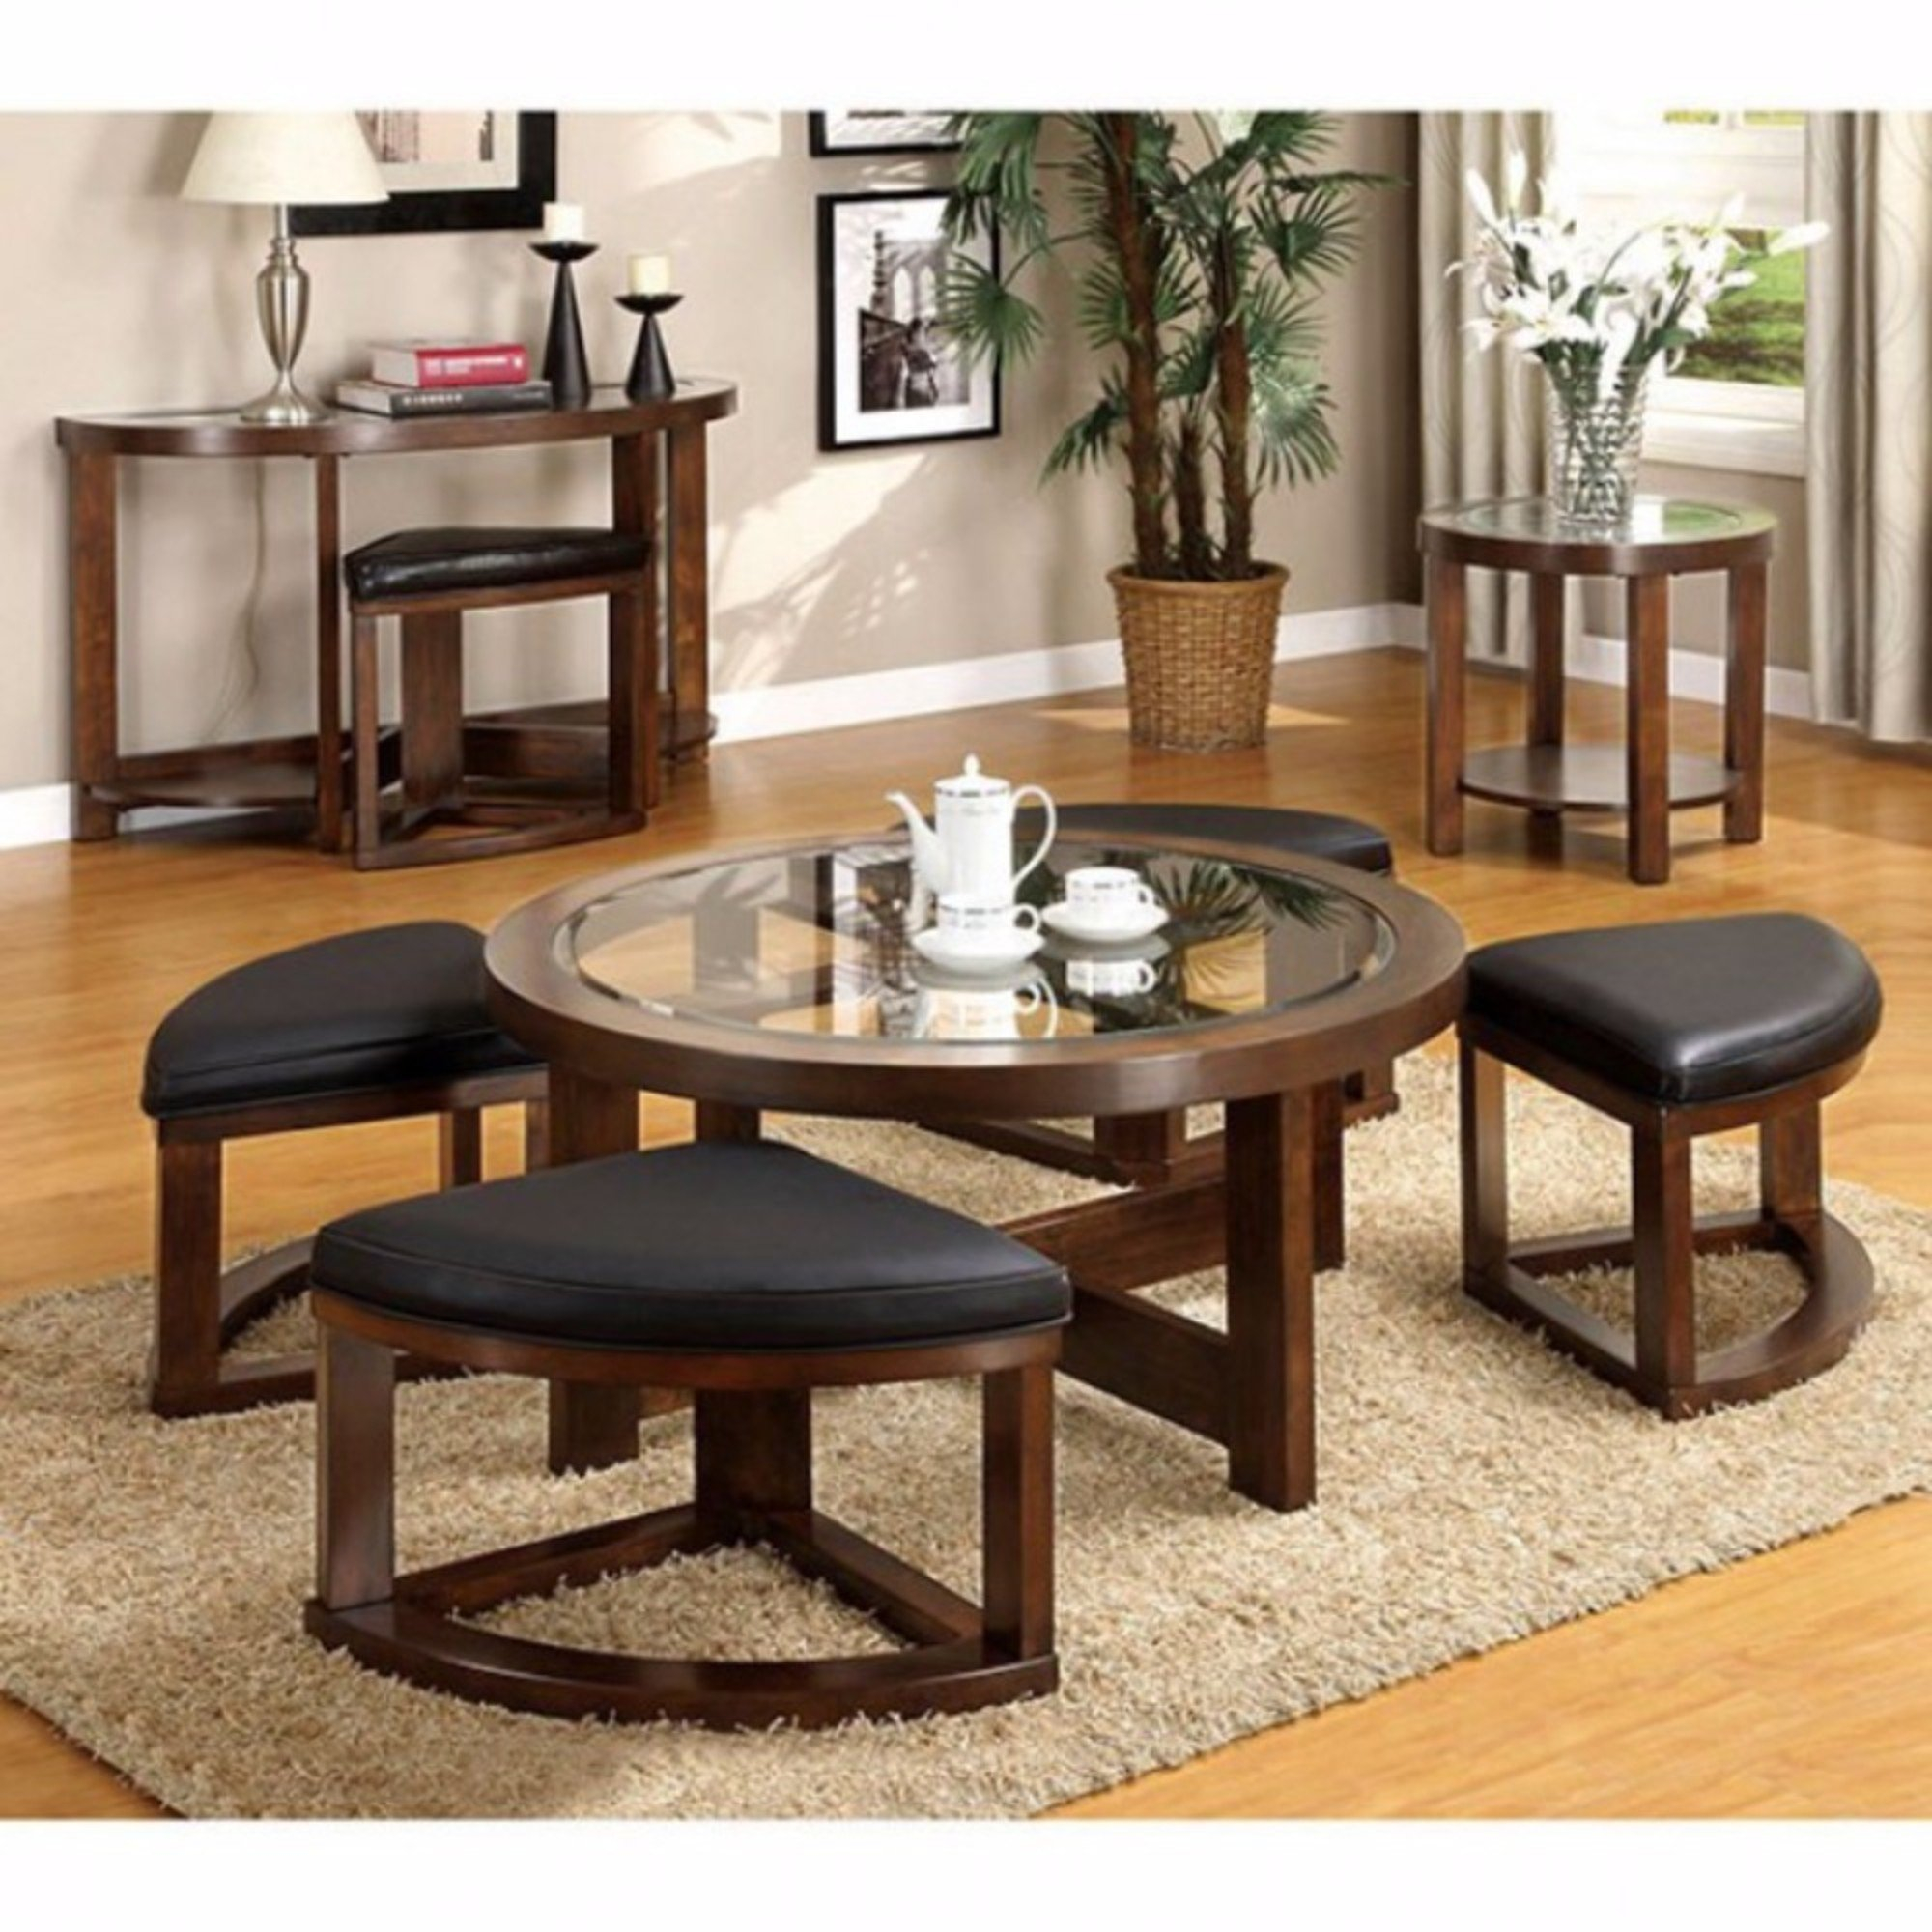 Red Barrel Studio Wellkamp Wooden Coffee Table With 4 Ottomans Wayfair within size 2000 X 2000